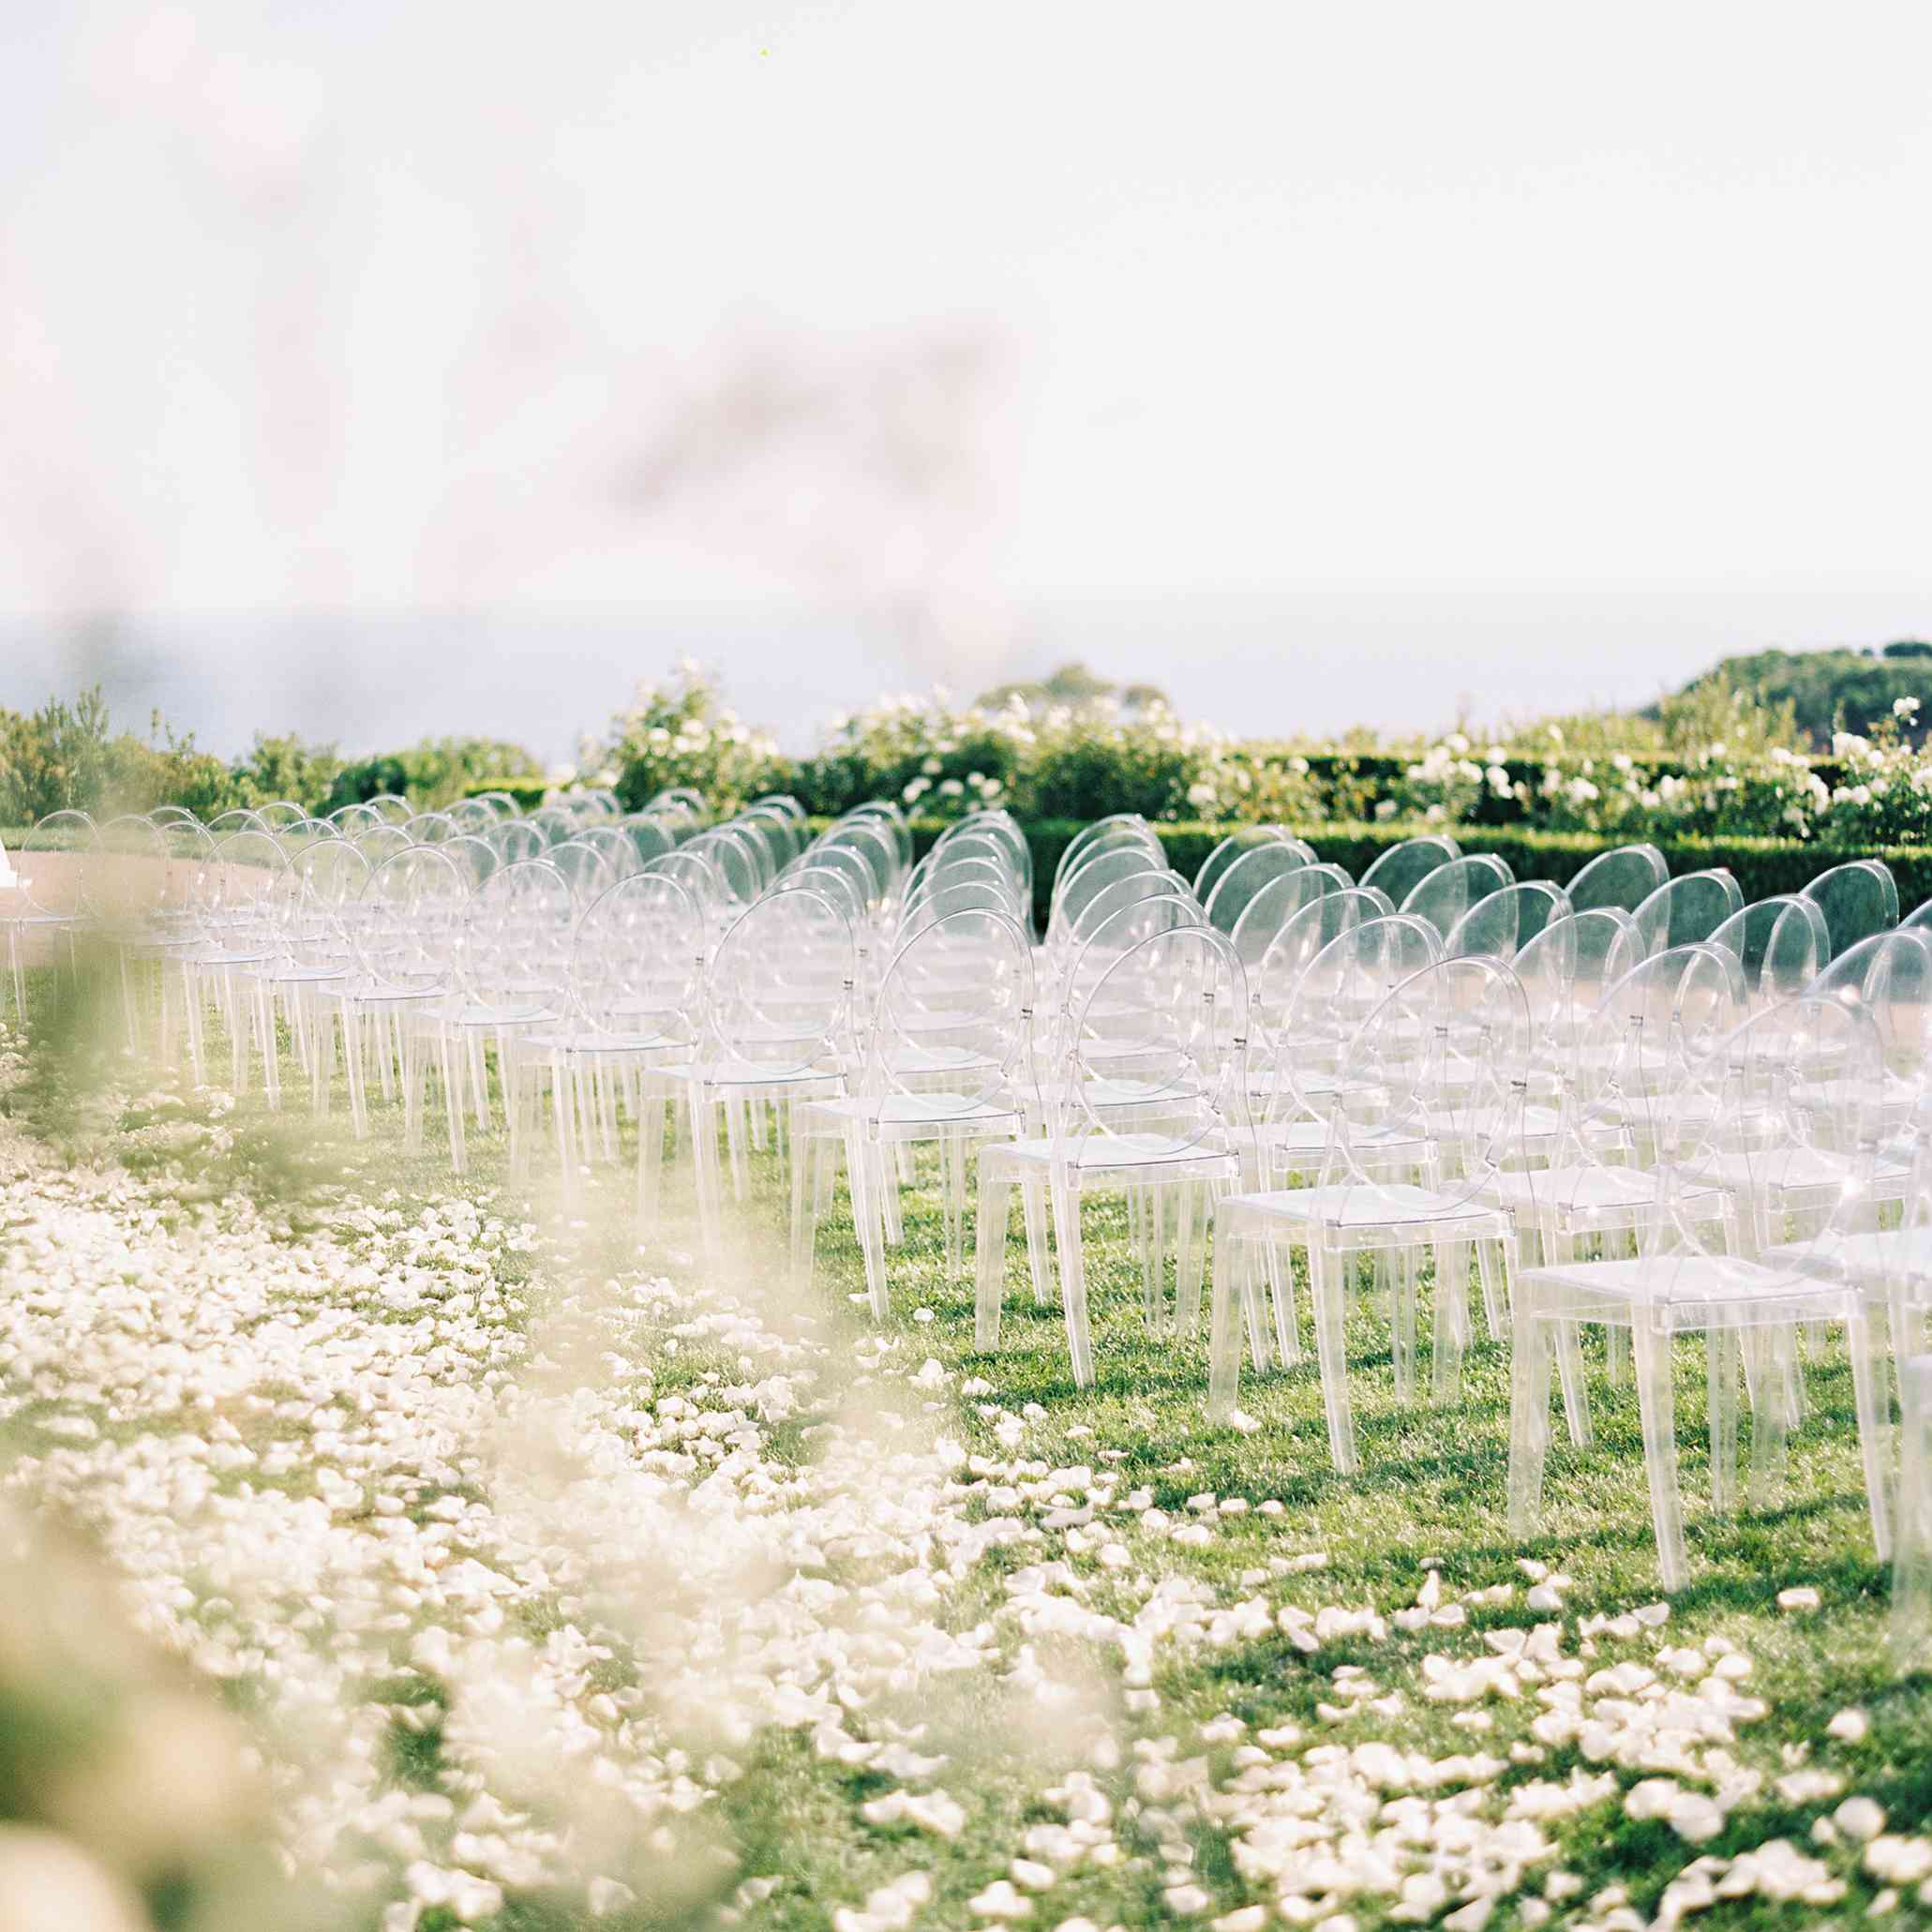 White flower petals lining the wedding aisle with acrylic chairs on grass